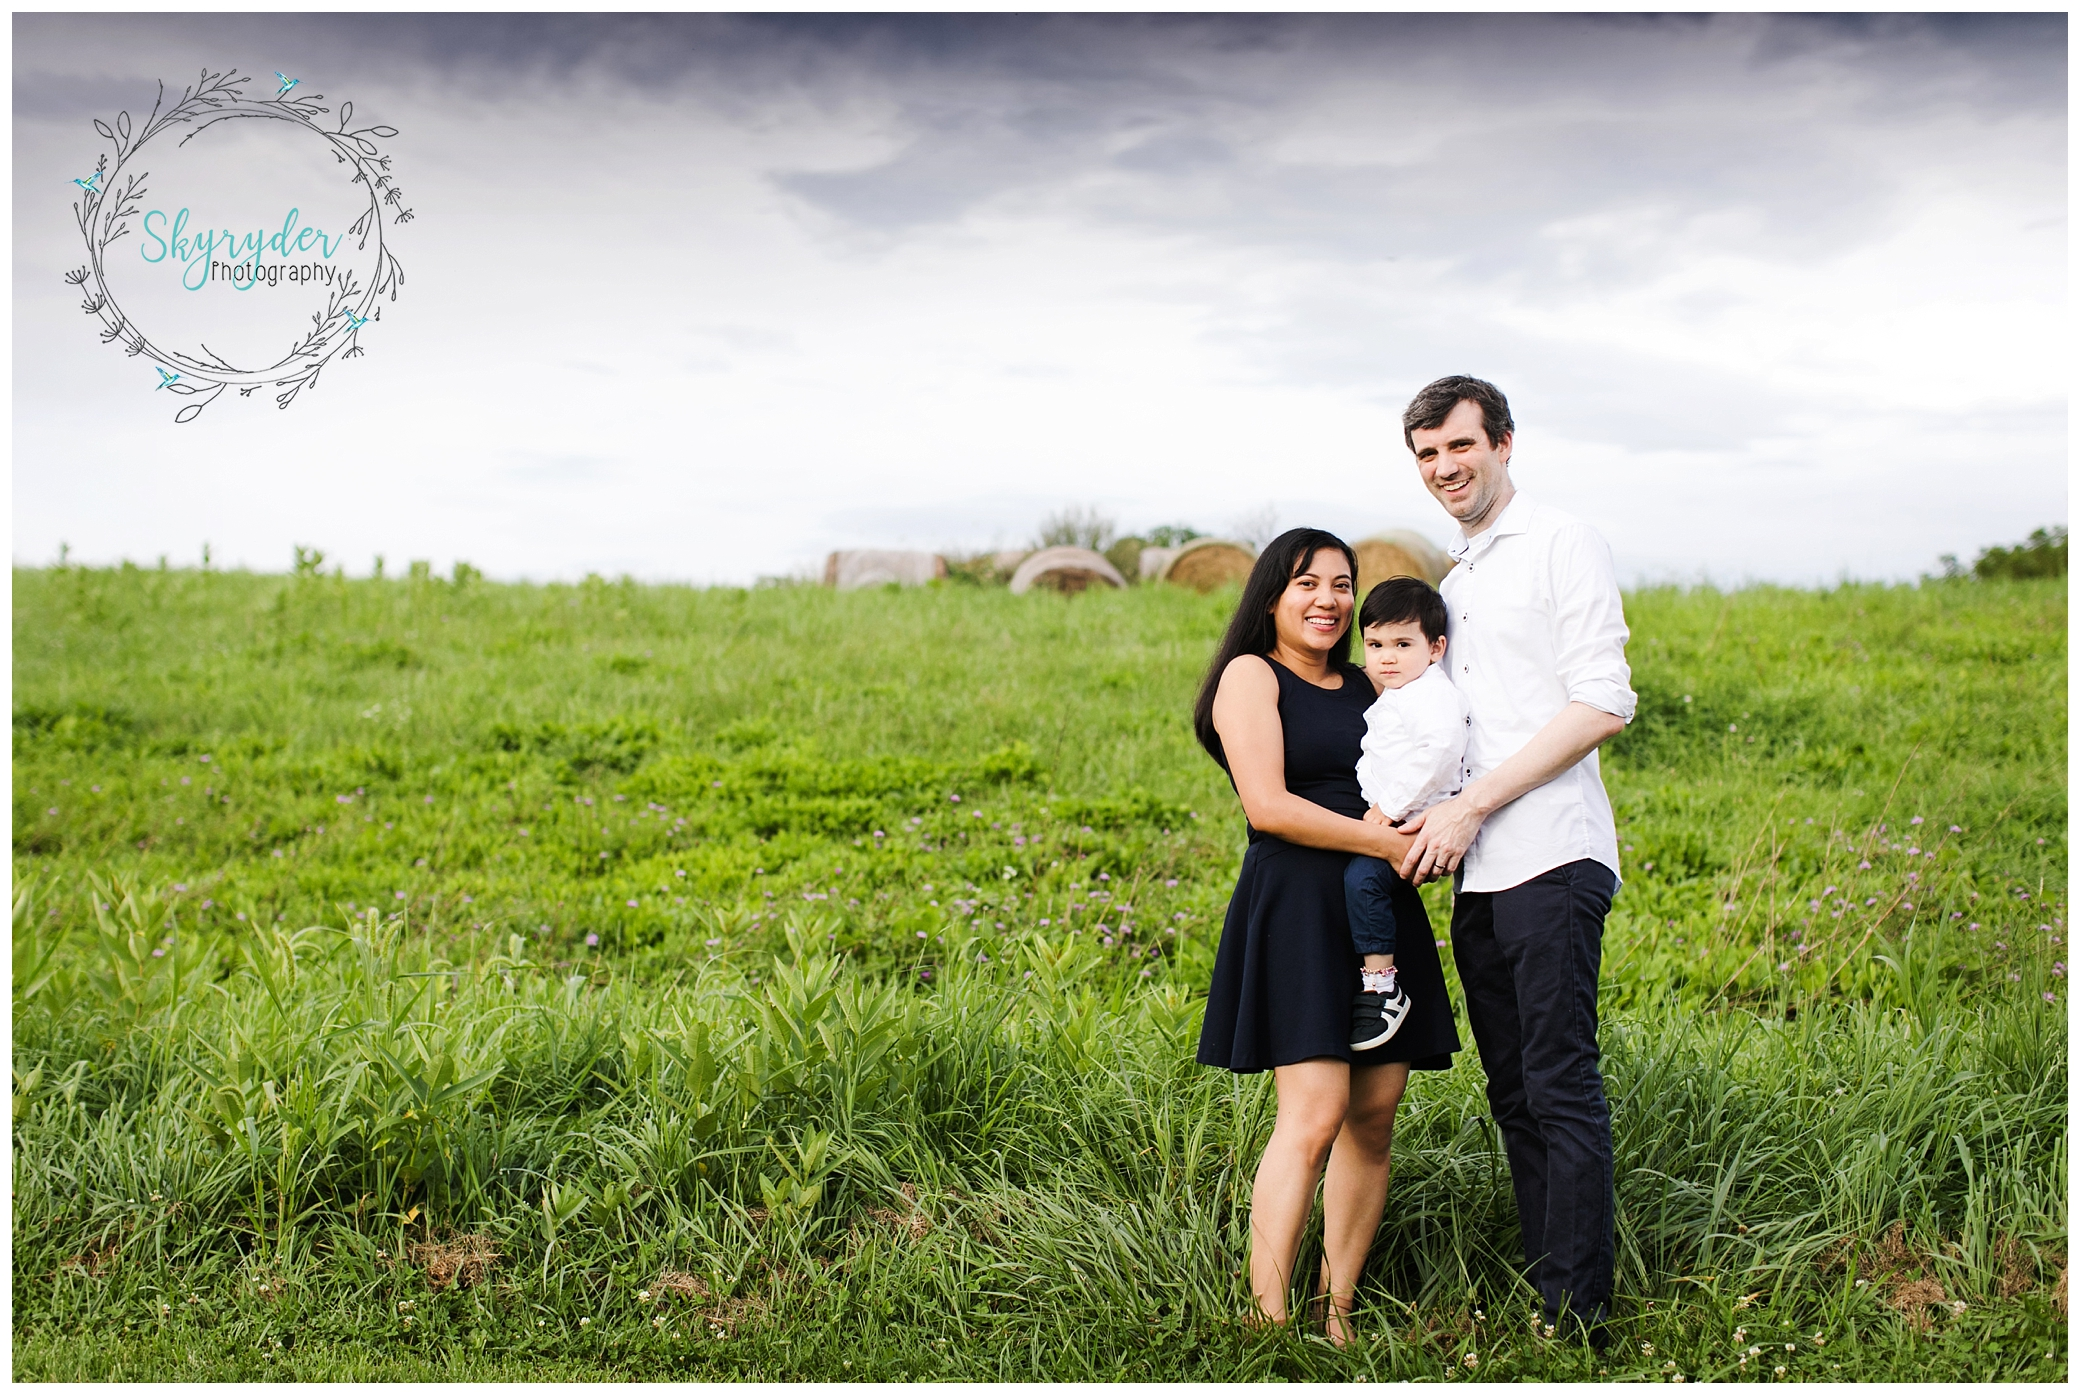 The England Family | Blacksburg Family Photographer